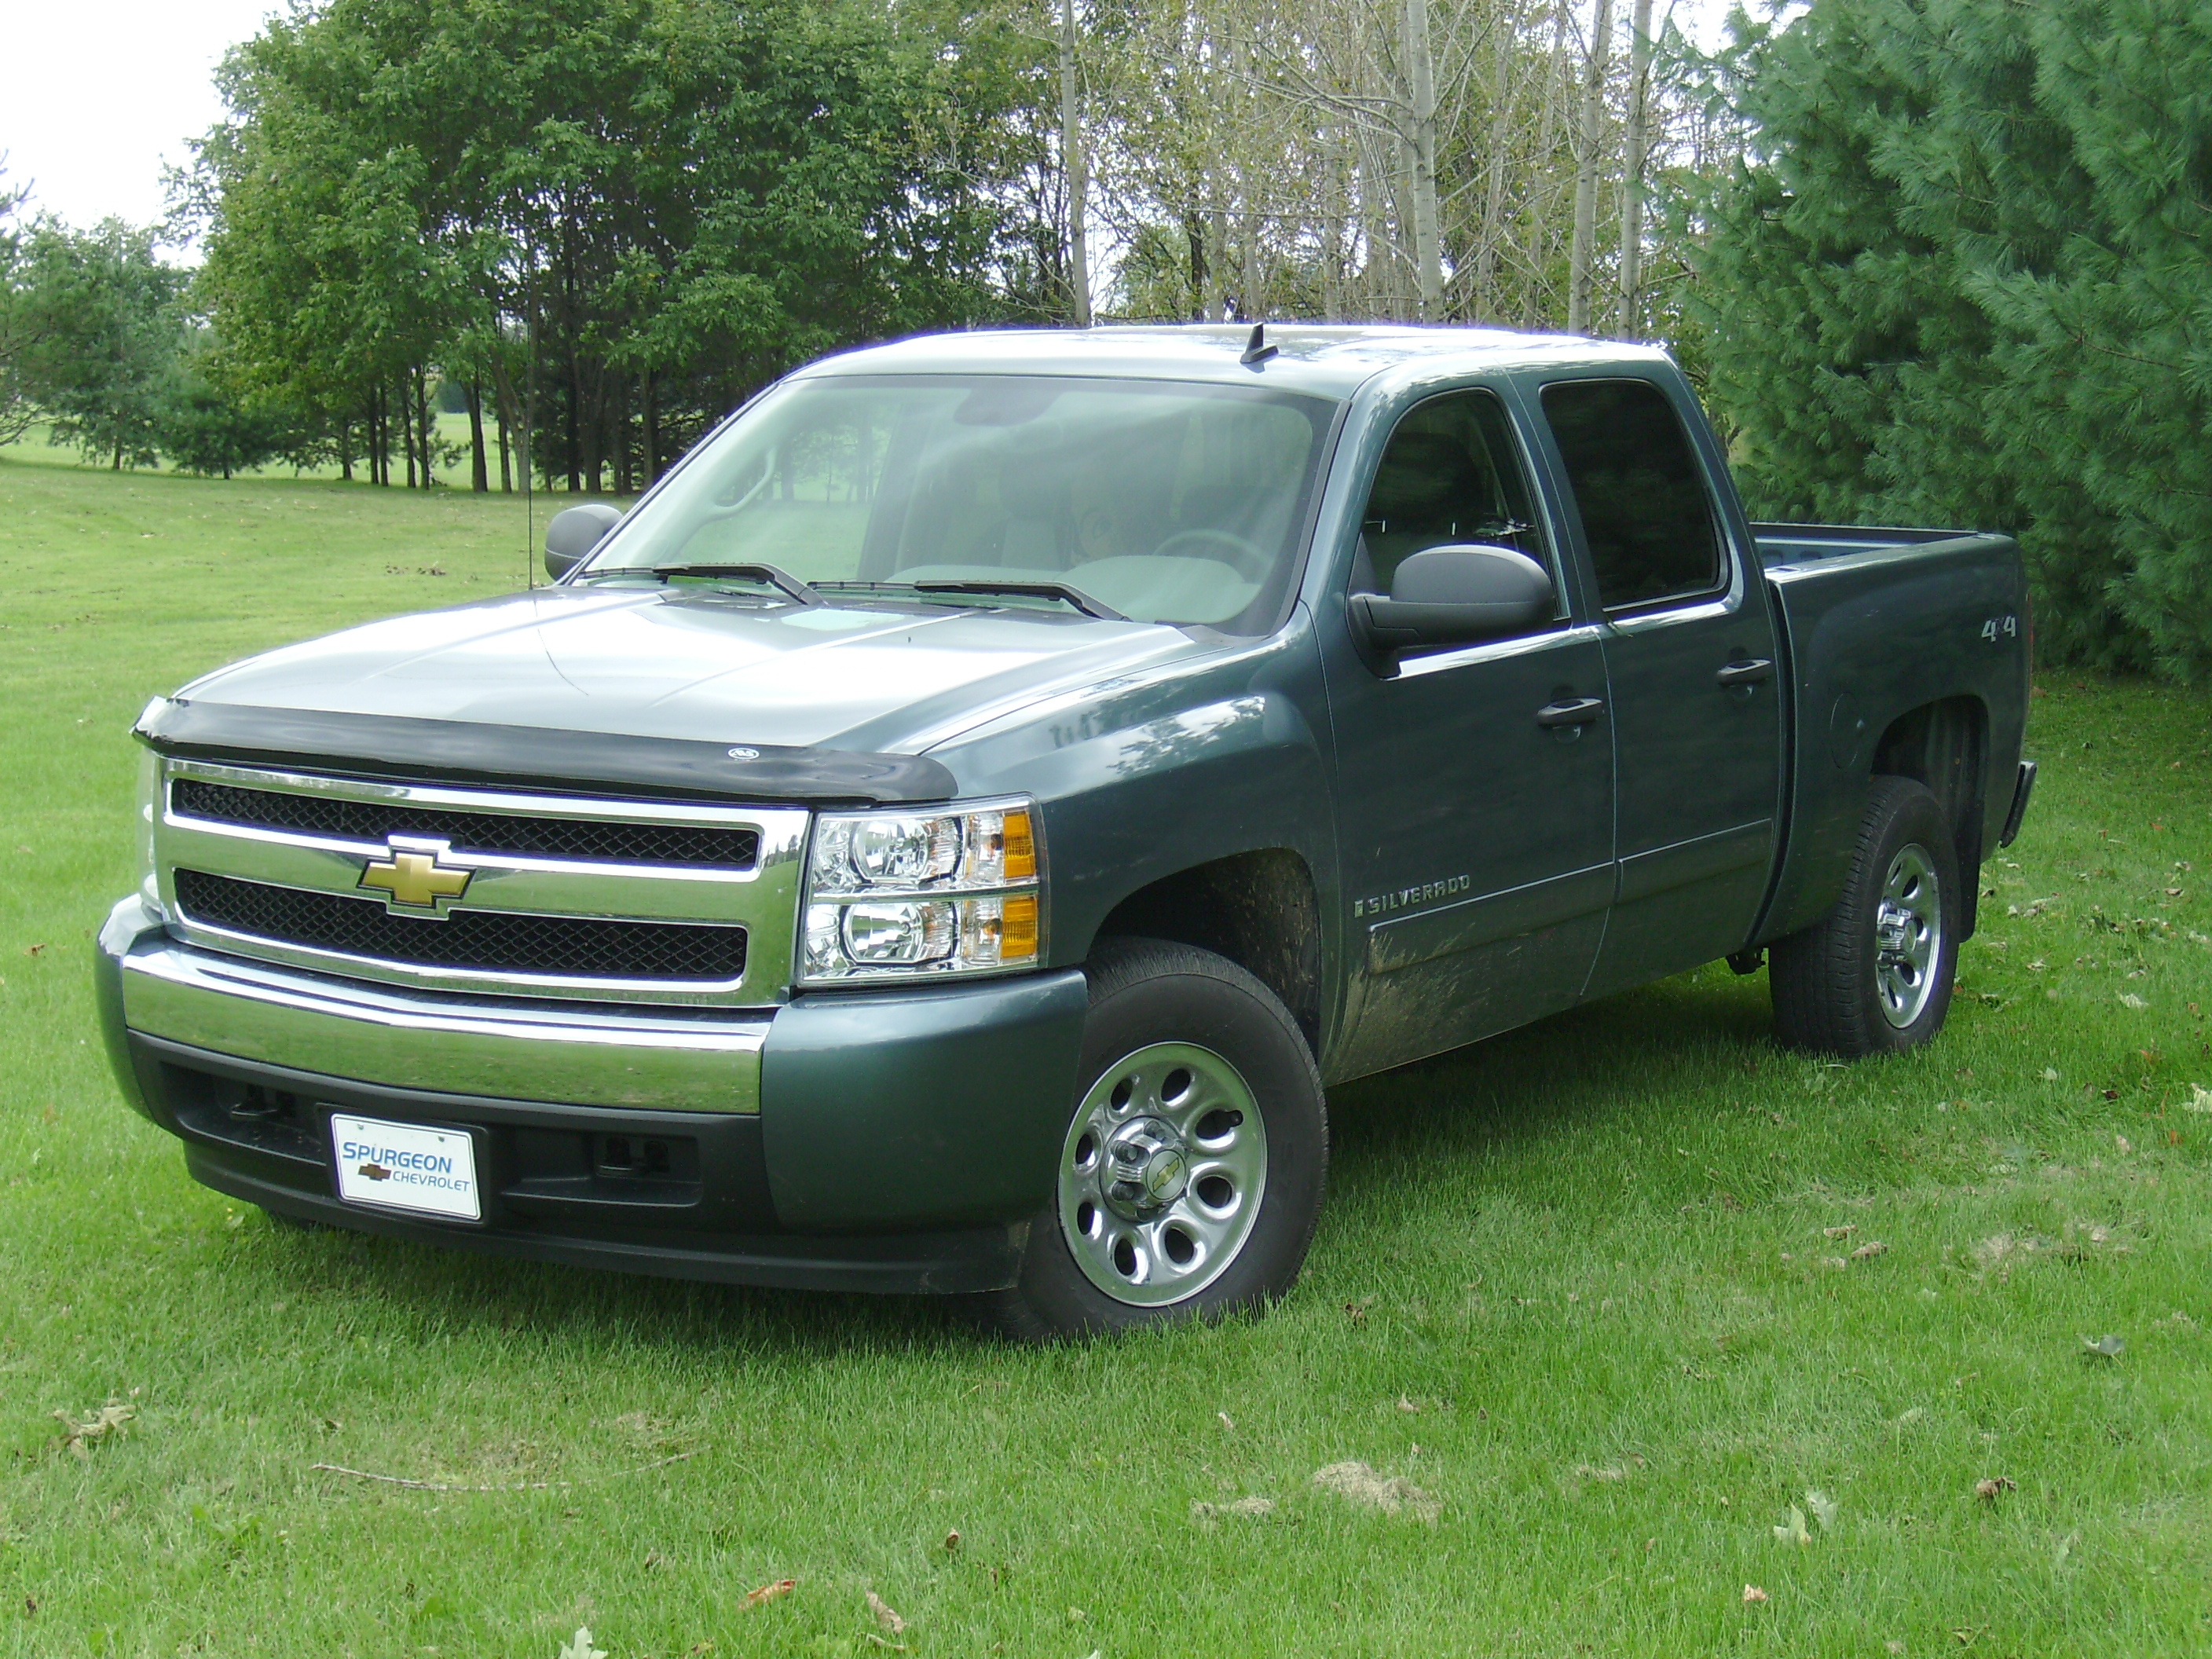 racins 10 2008 chevrolet silverado 1500 crew cab specs photos modification info at cardomain. Black Bedroom Furniture Sets. Home Design Ideas